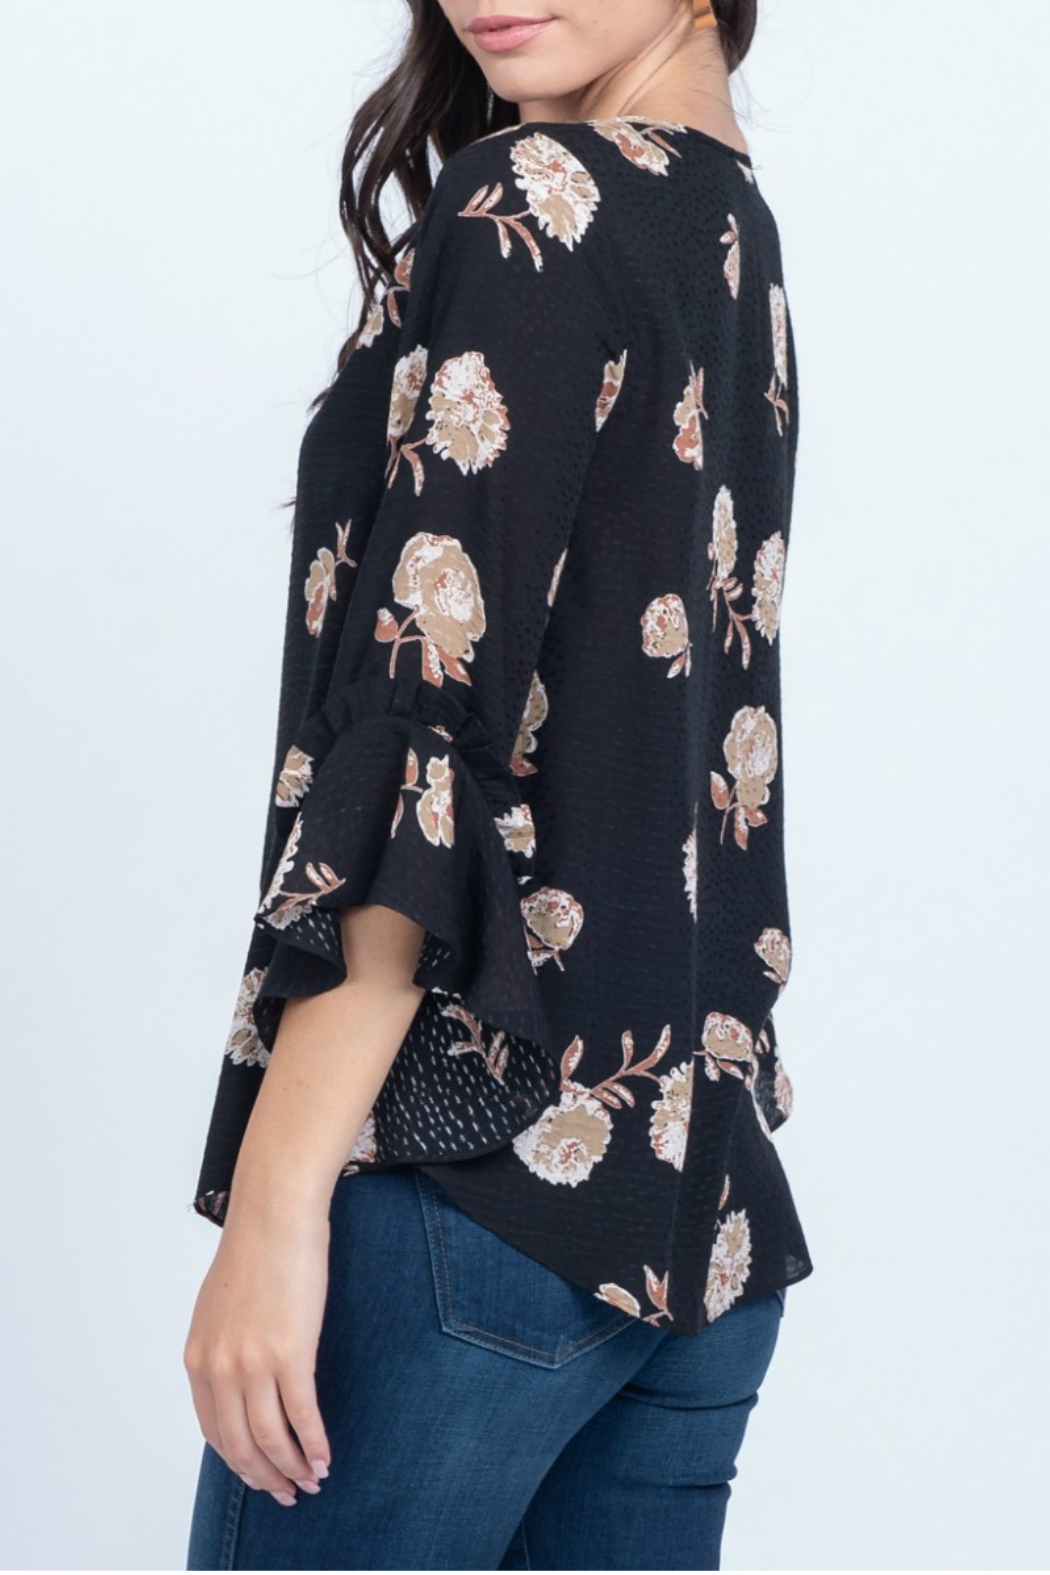 Everly Printed floral woven ruffle sleeve top - Front Full Image